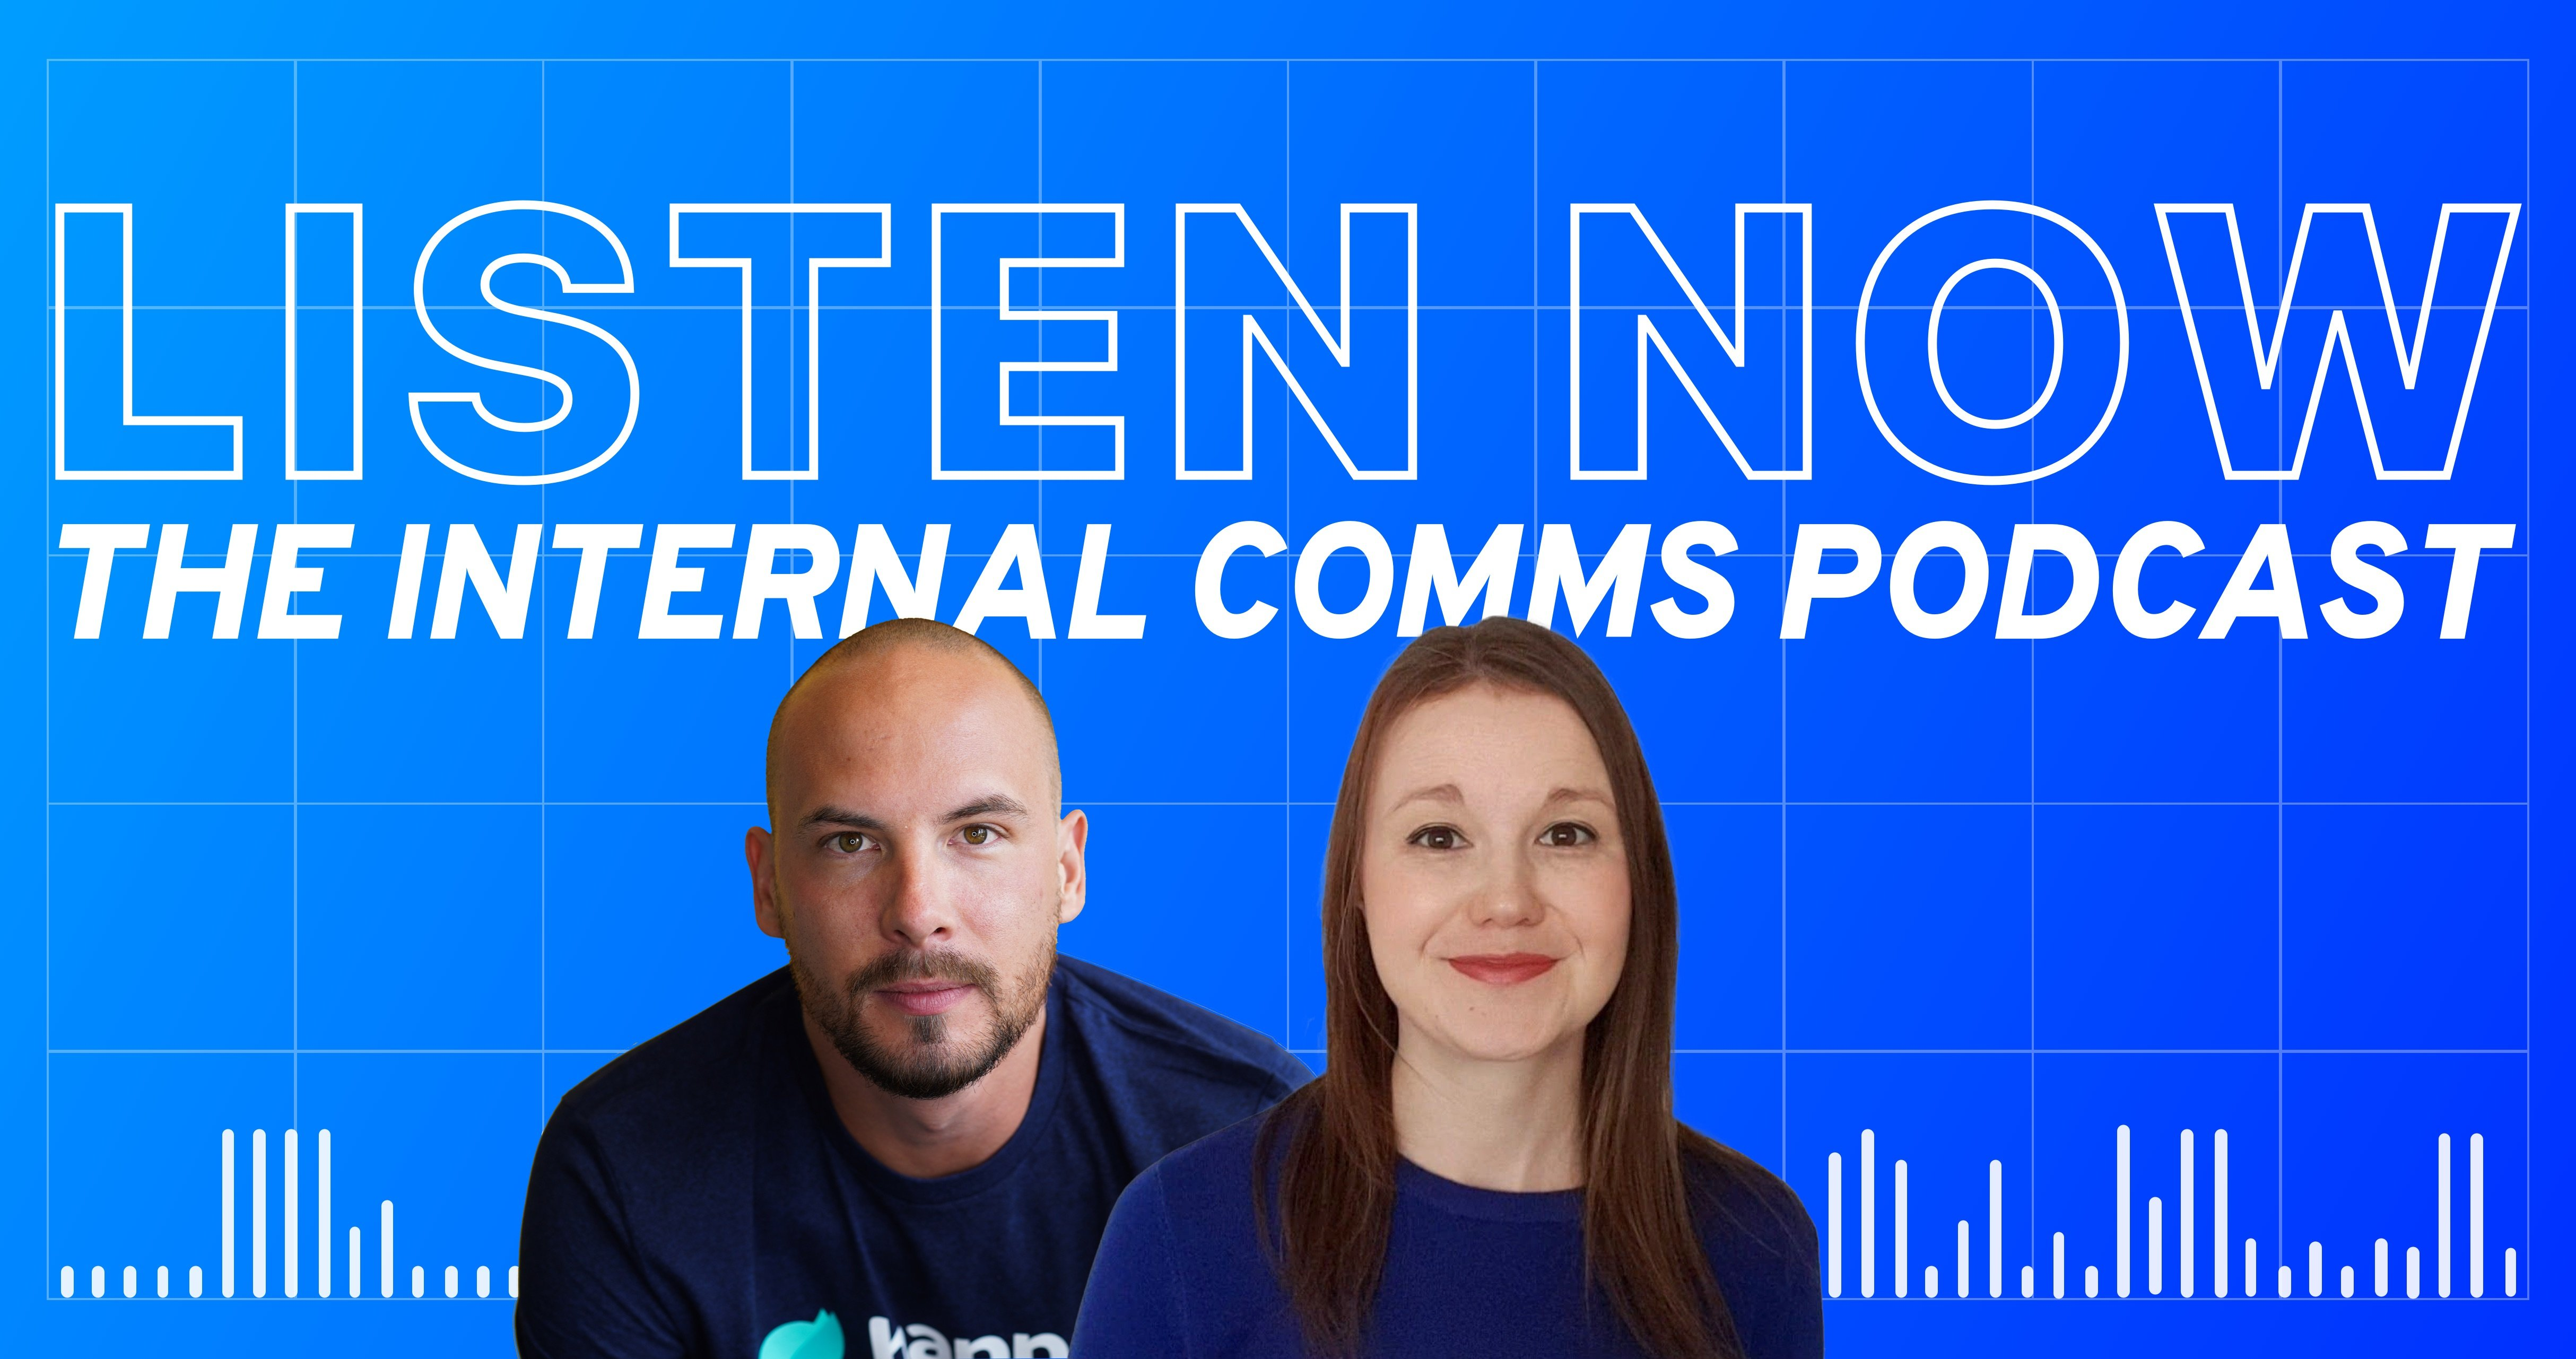 Podcast: How to do an Internal Comms audit?